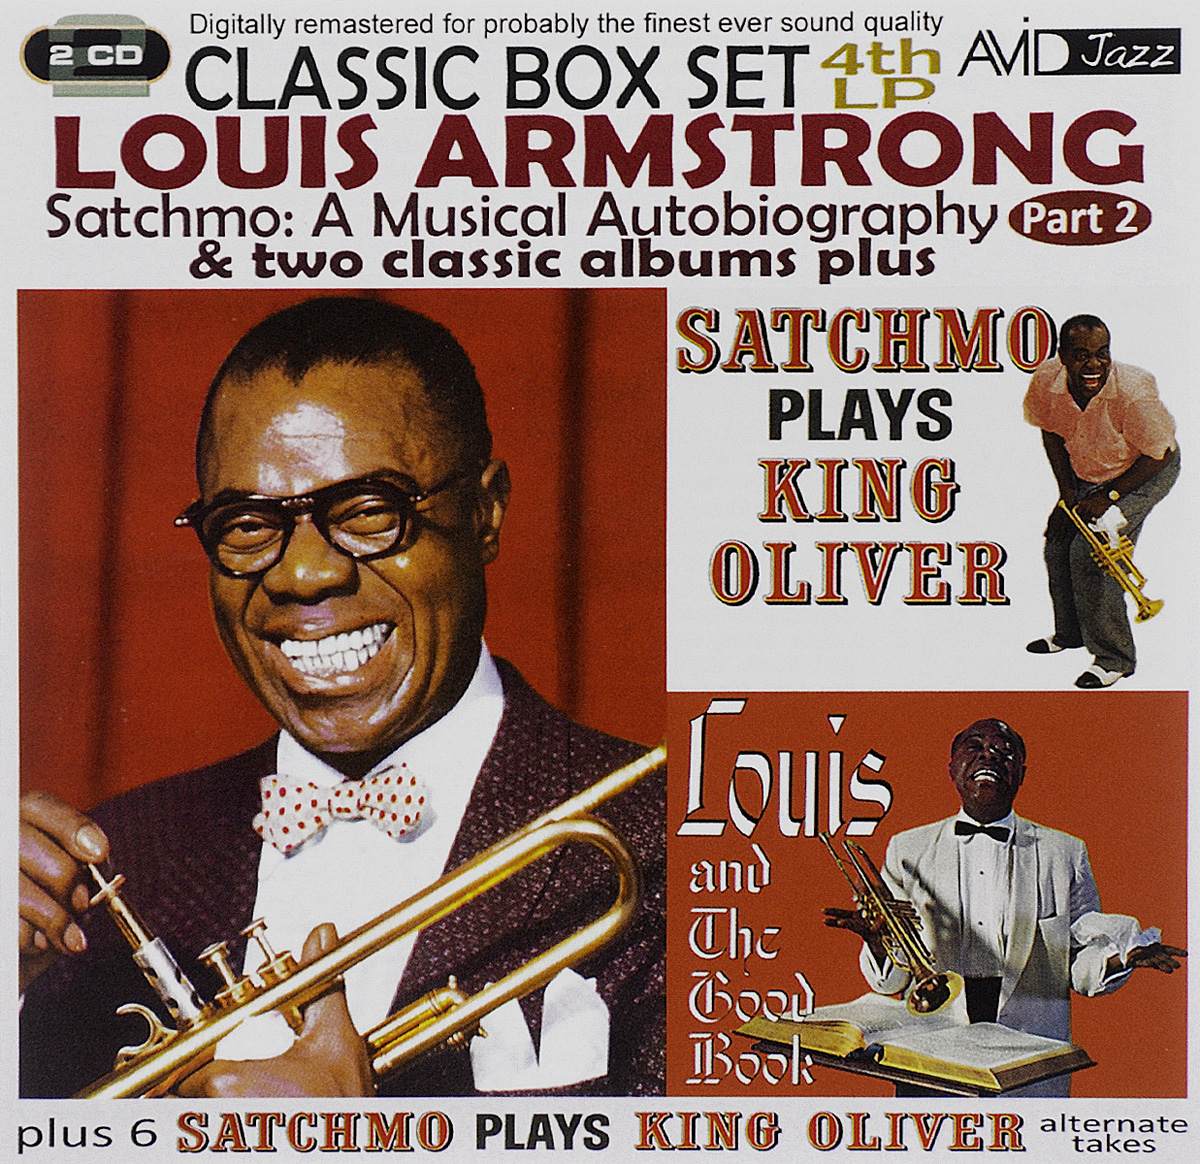 Луи Армстронг Avid Jazz. Louis Armstrong. Satchmo. A Musical Autobiography. Part 2. 6 Satchmo Plays King Oliver. Alternate Takes (2 CD) велосипедные тормоза sram avid sram 1 e1 db1 sram avid elixir 1 e1